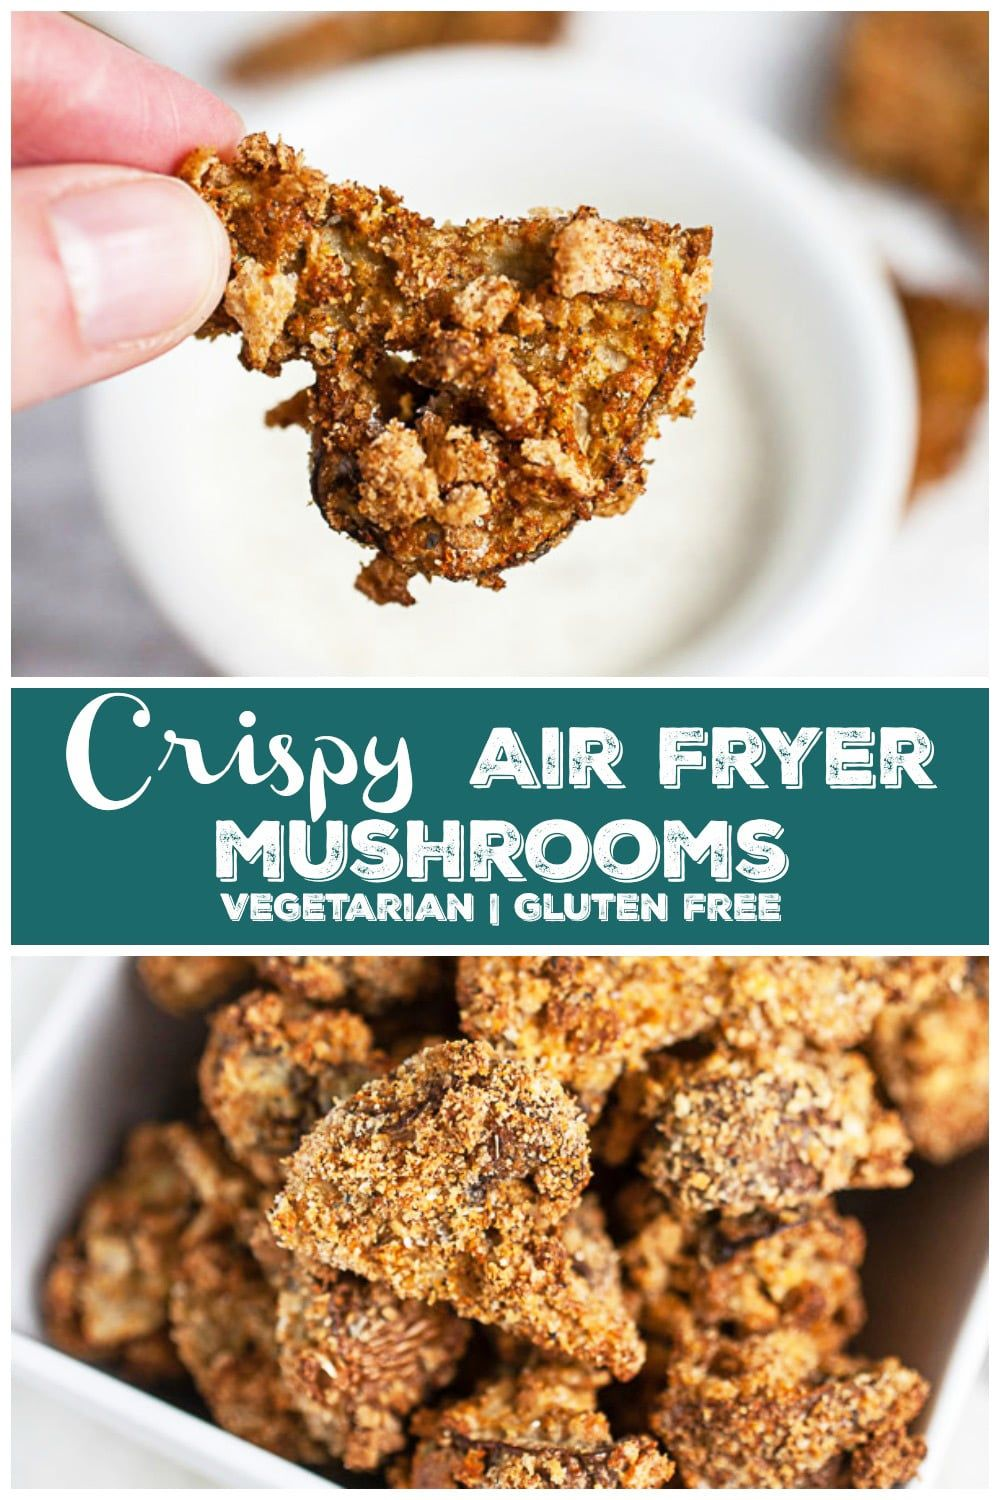 These Crispy Air Fryer Mushrooms are easy to prepare and